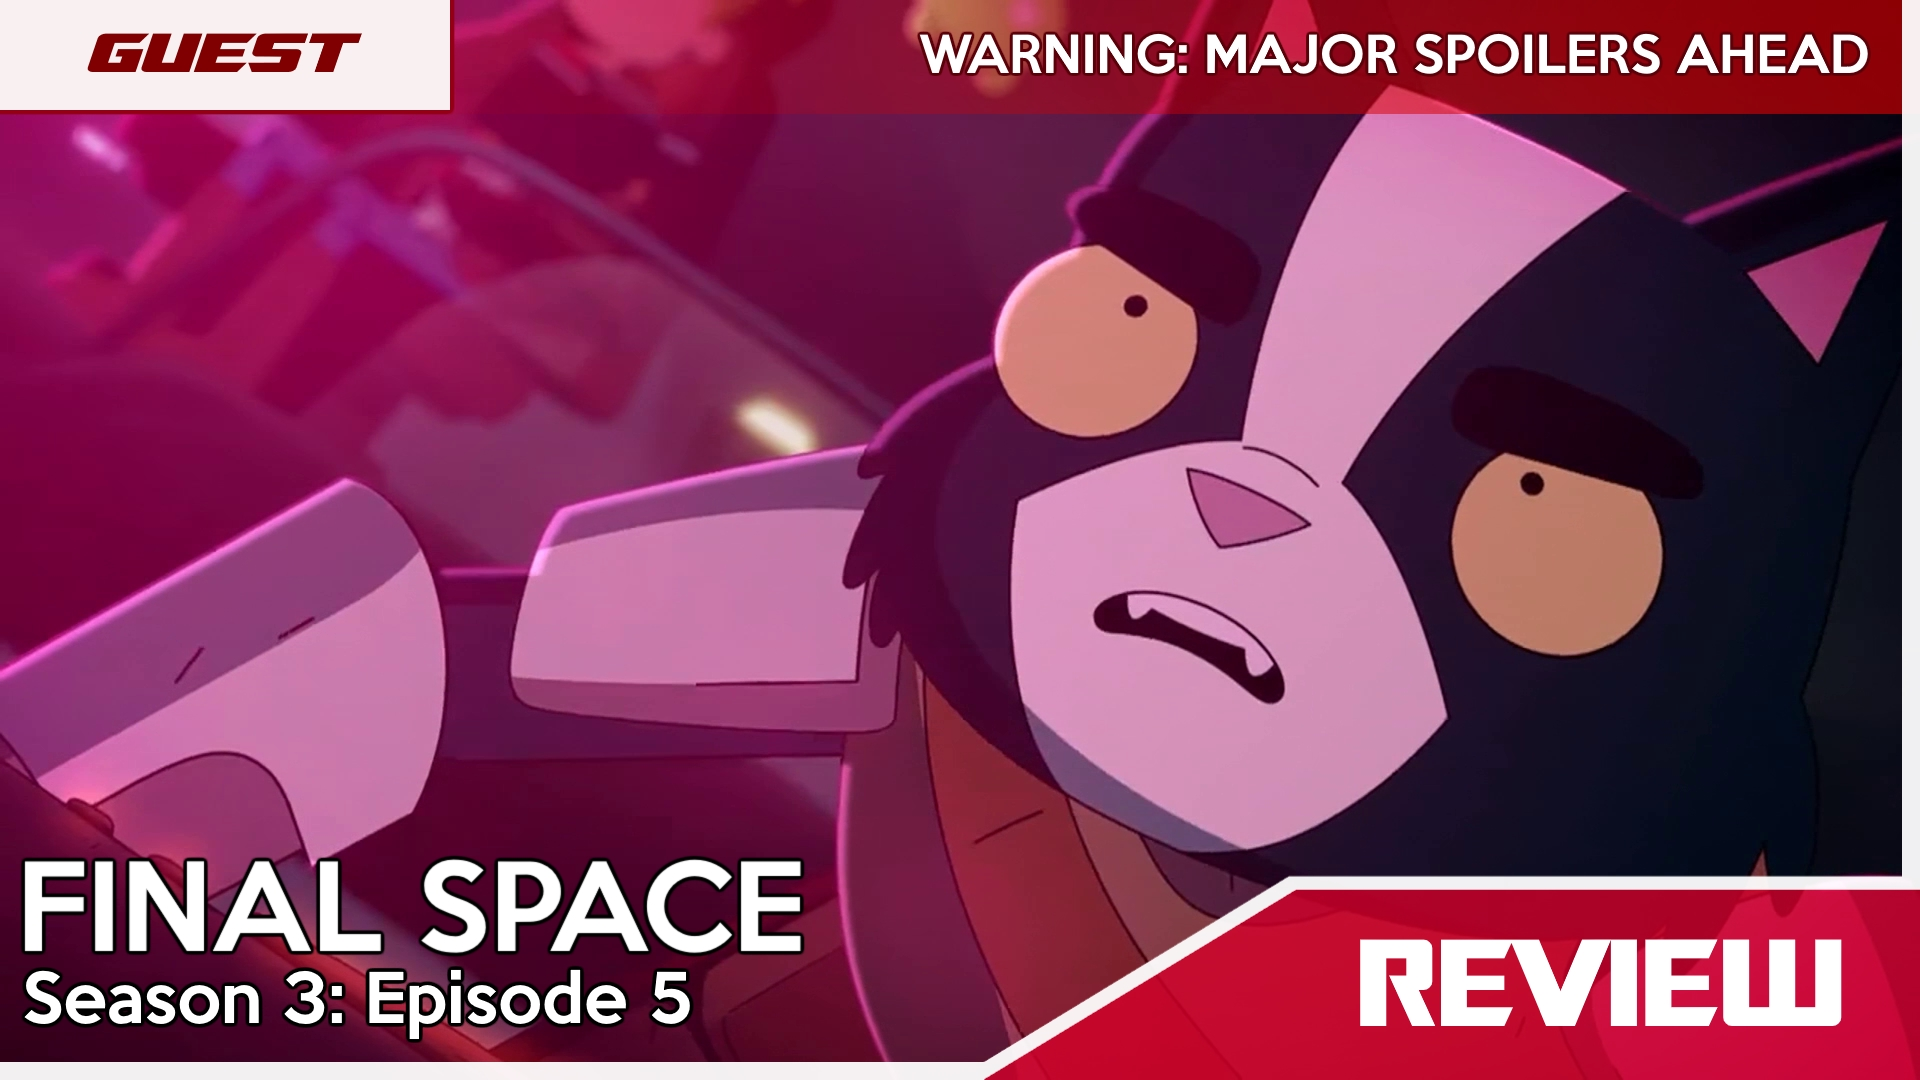 Final Space Season 3 Episode 5 Review